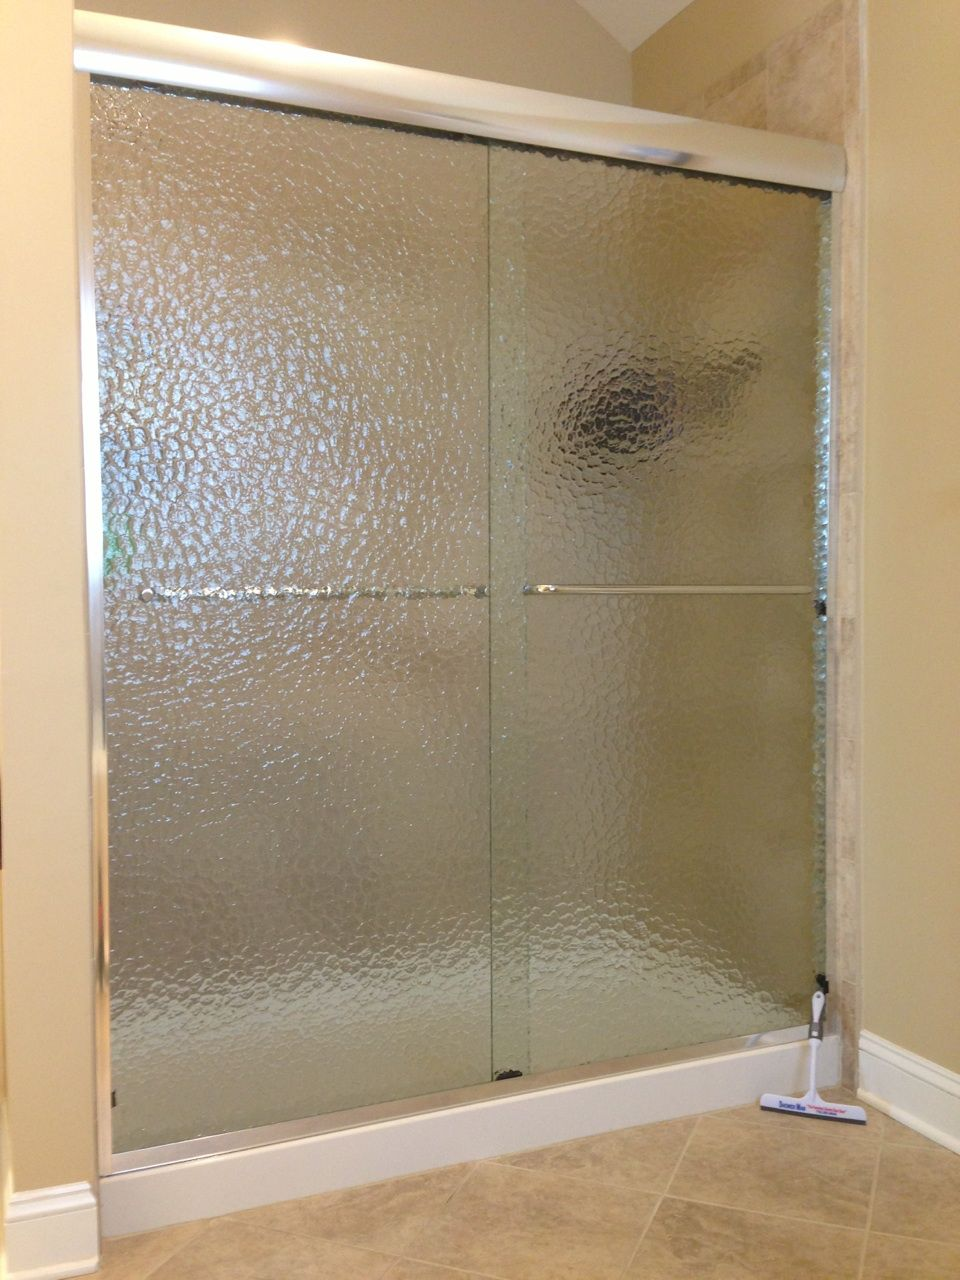 Frosted Shower Doors Shown Is A Textured Showerman Shower Enclosure Made With Rain Glass Http S Frosted Shower Doors Shower Doors Frosted Glass Shower Door